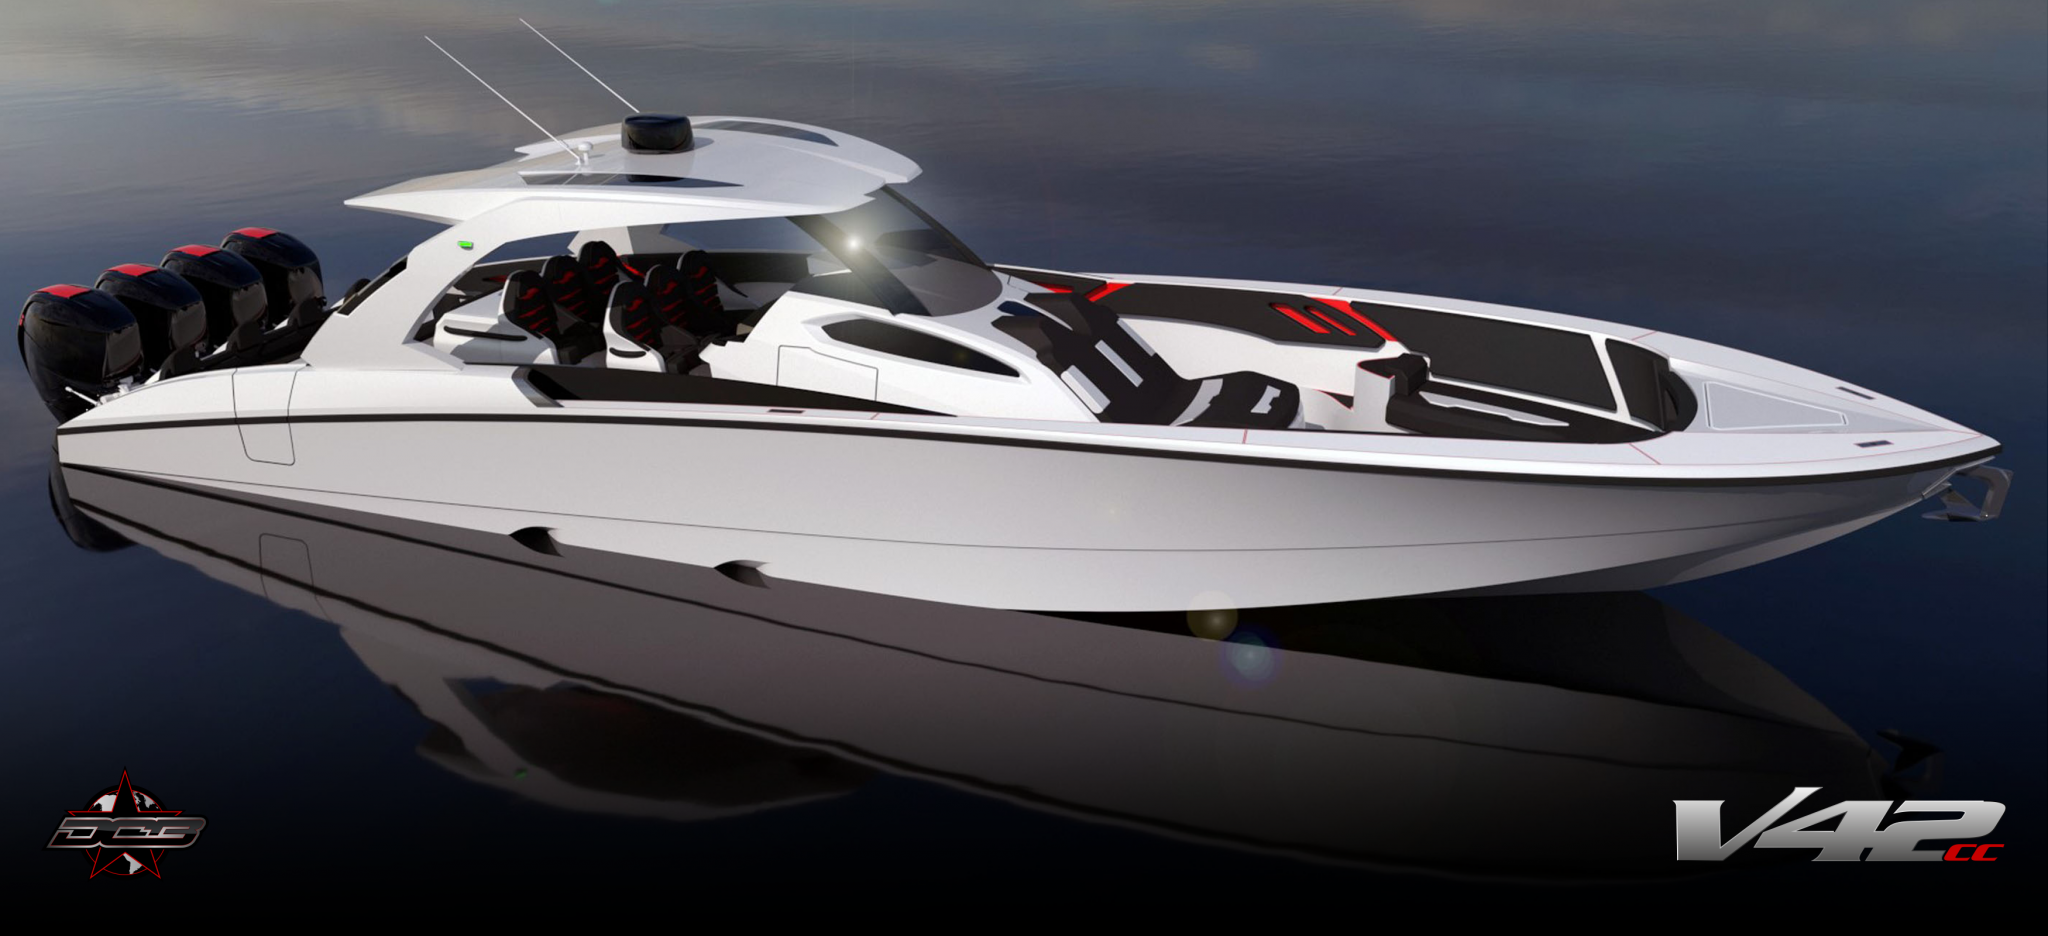 Best Center Console Boats 2020 DCB Announces 42 Center Console Model for 2020   Powerboat Nation